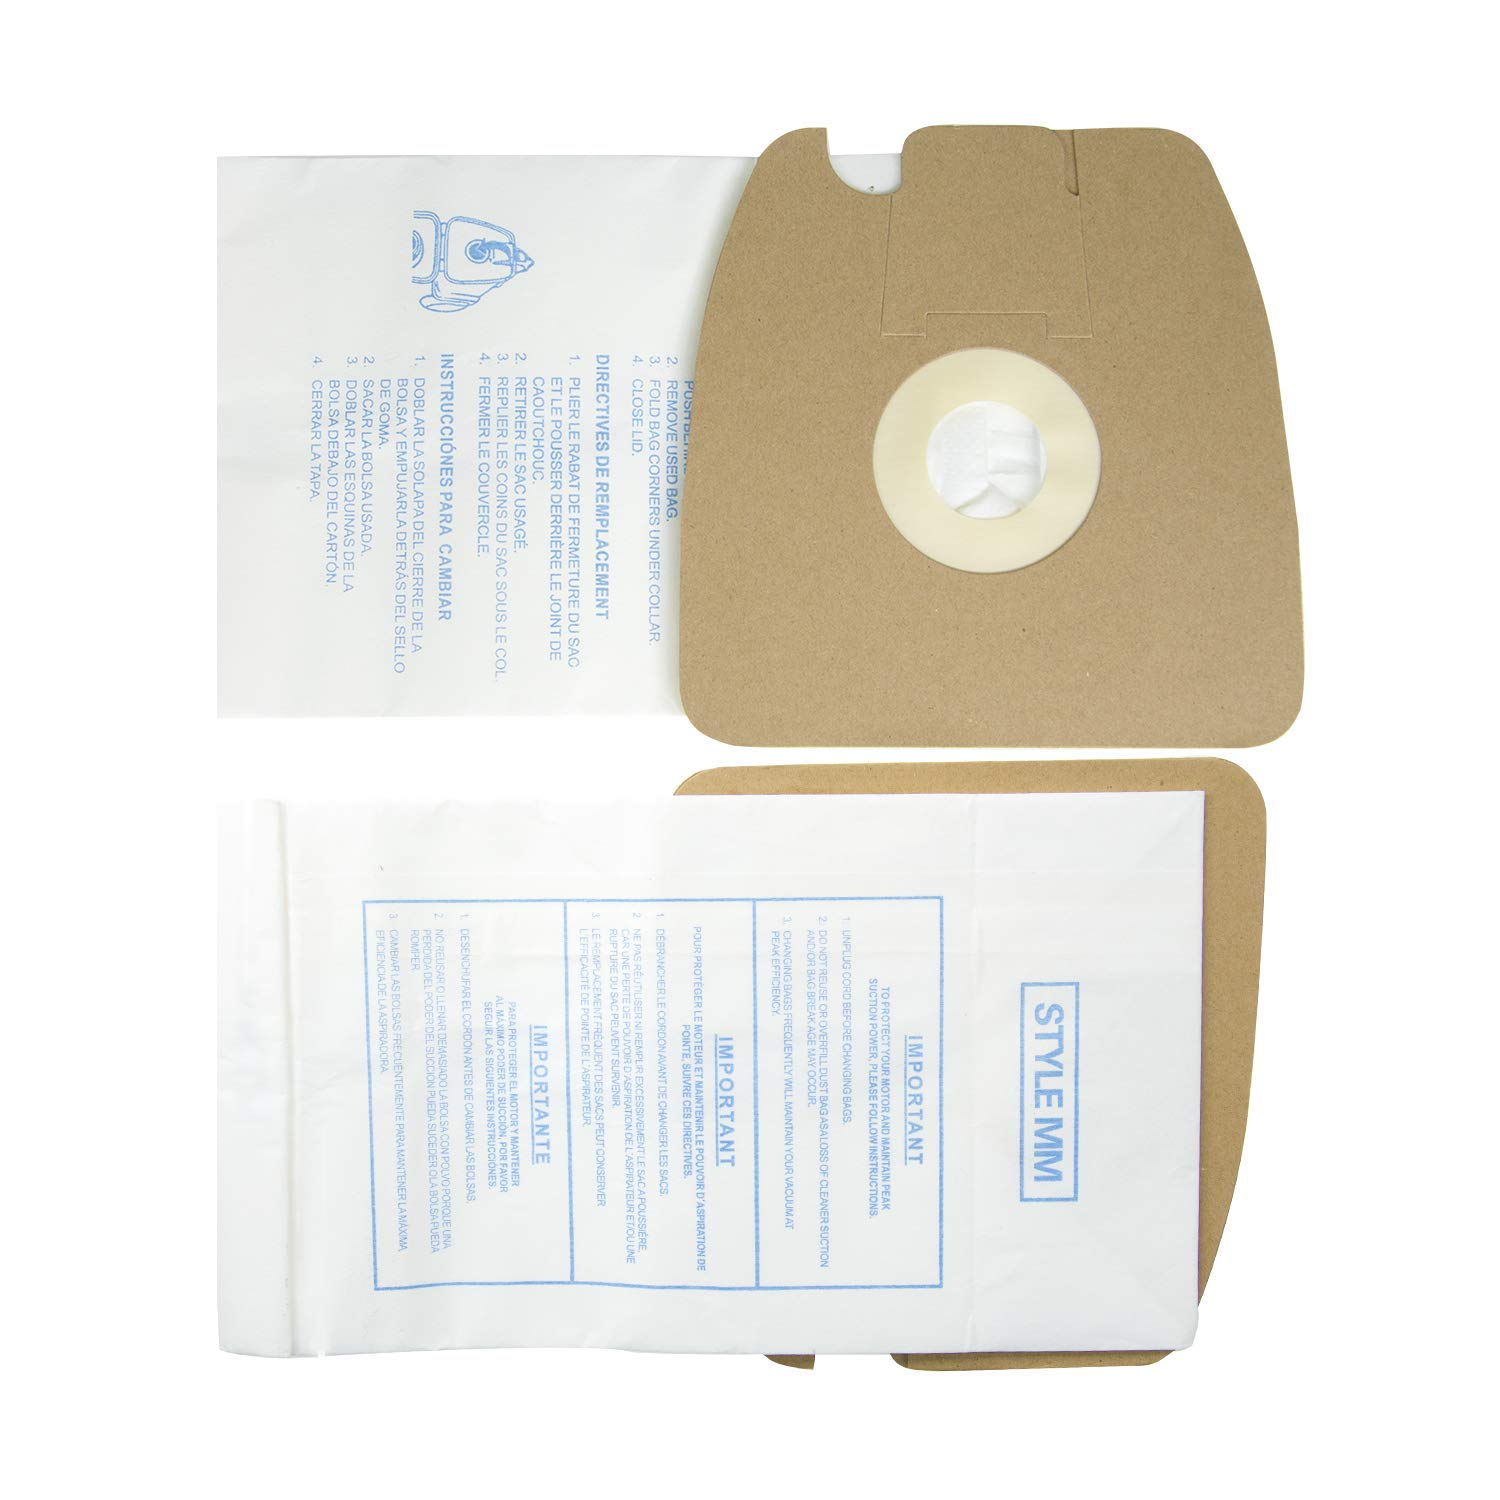 Yours 20Pcs Replacement for Eureka 3670 & 3680 MM Vacuum Bags,and Replacement Vacuum Bags Part # 60295, 60296, 60297